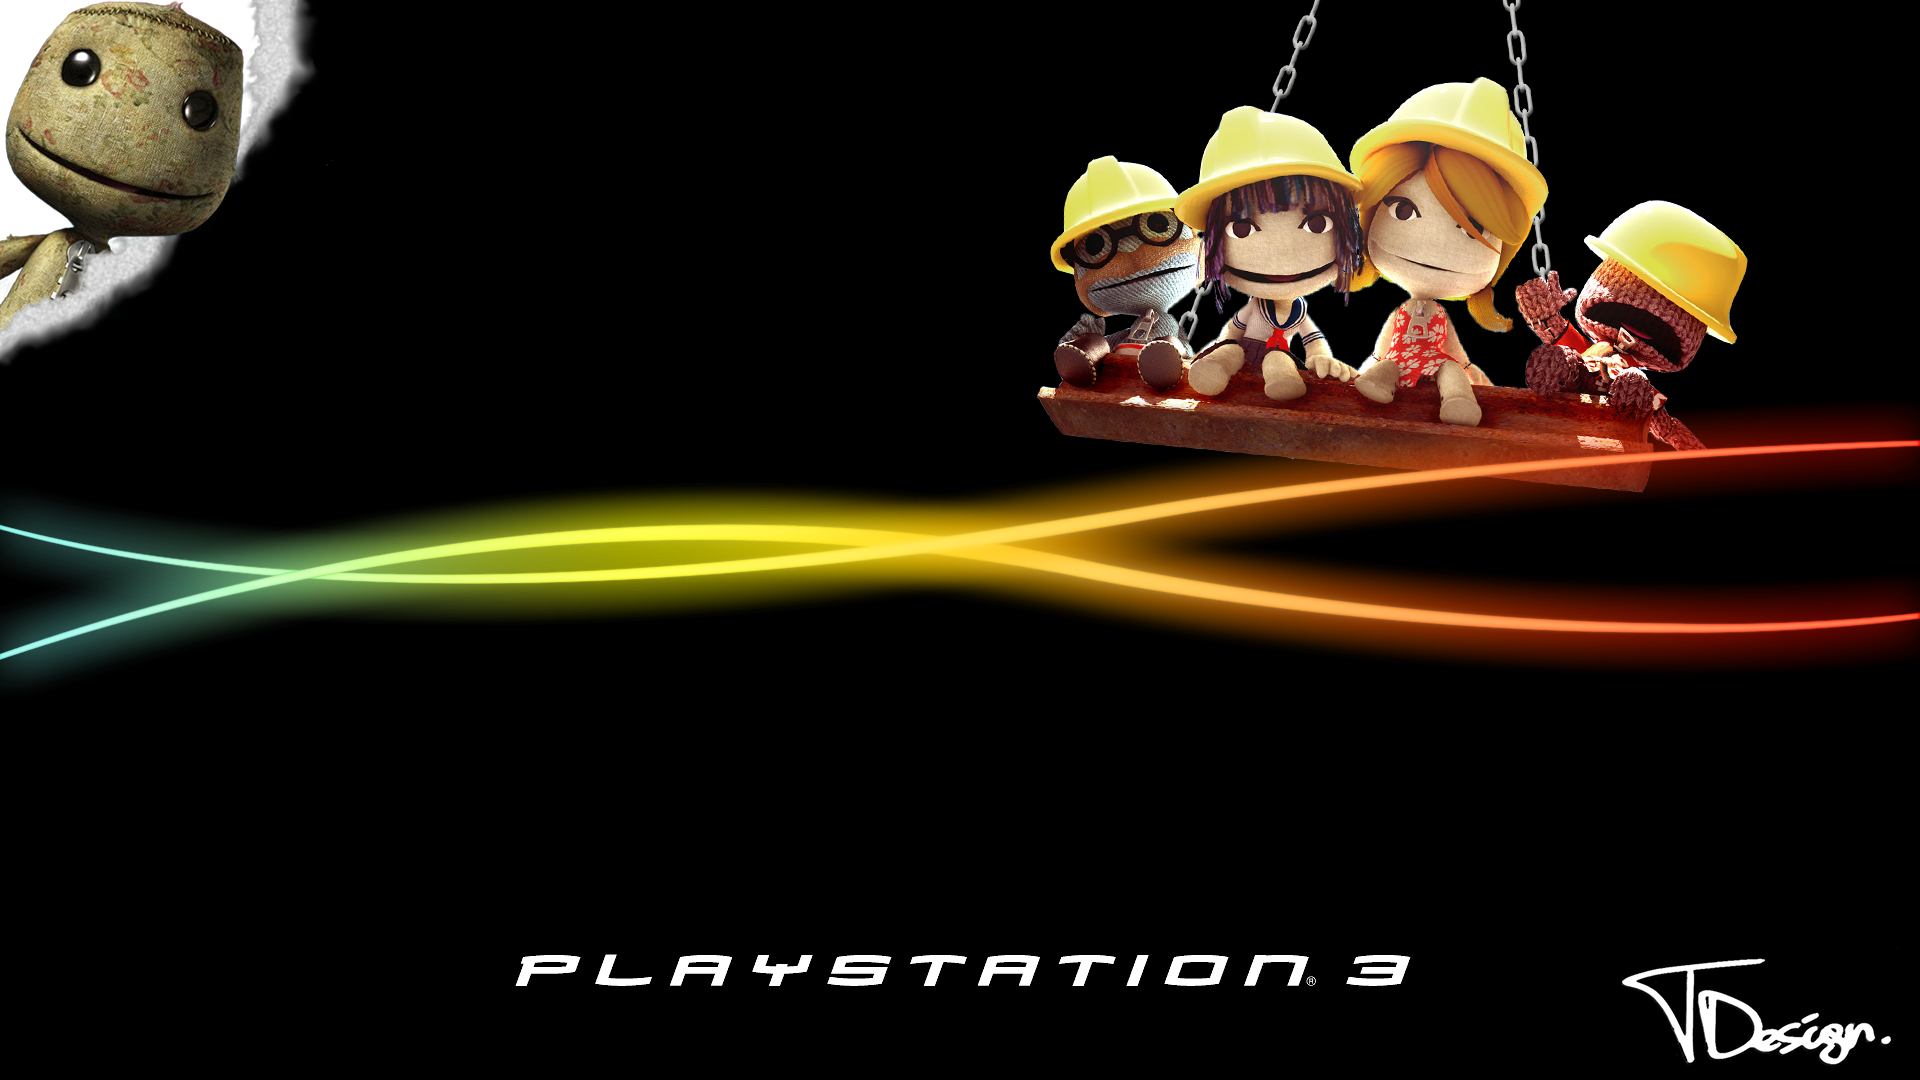 Ps3 Backgrounds Wallpapers